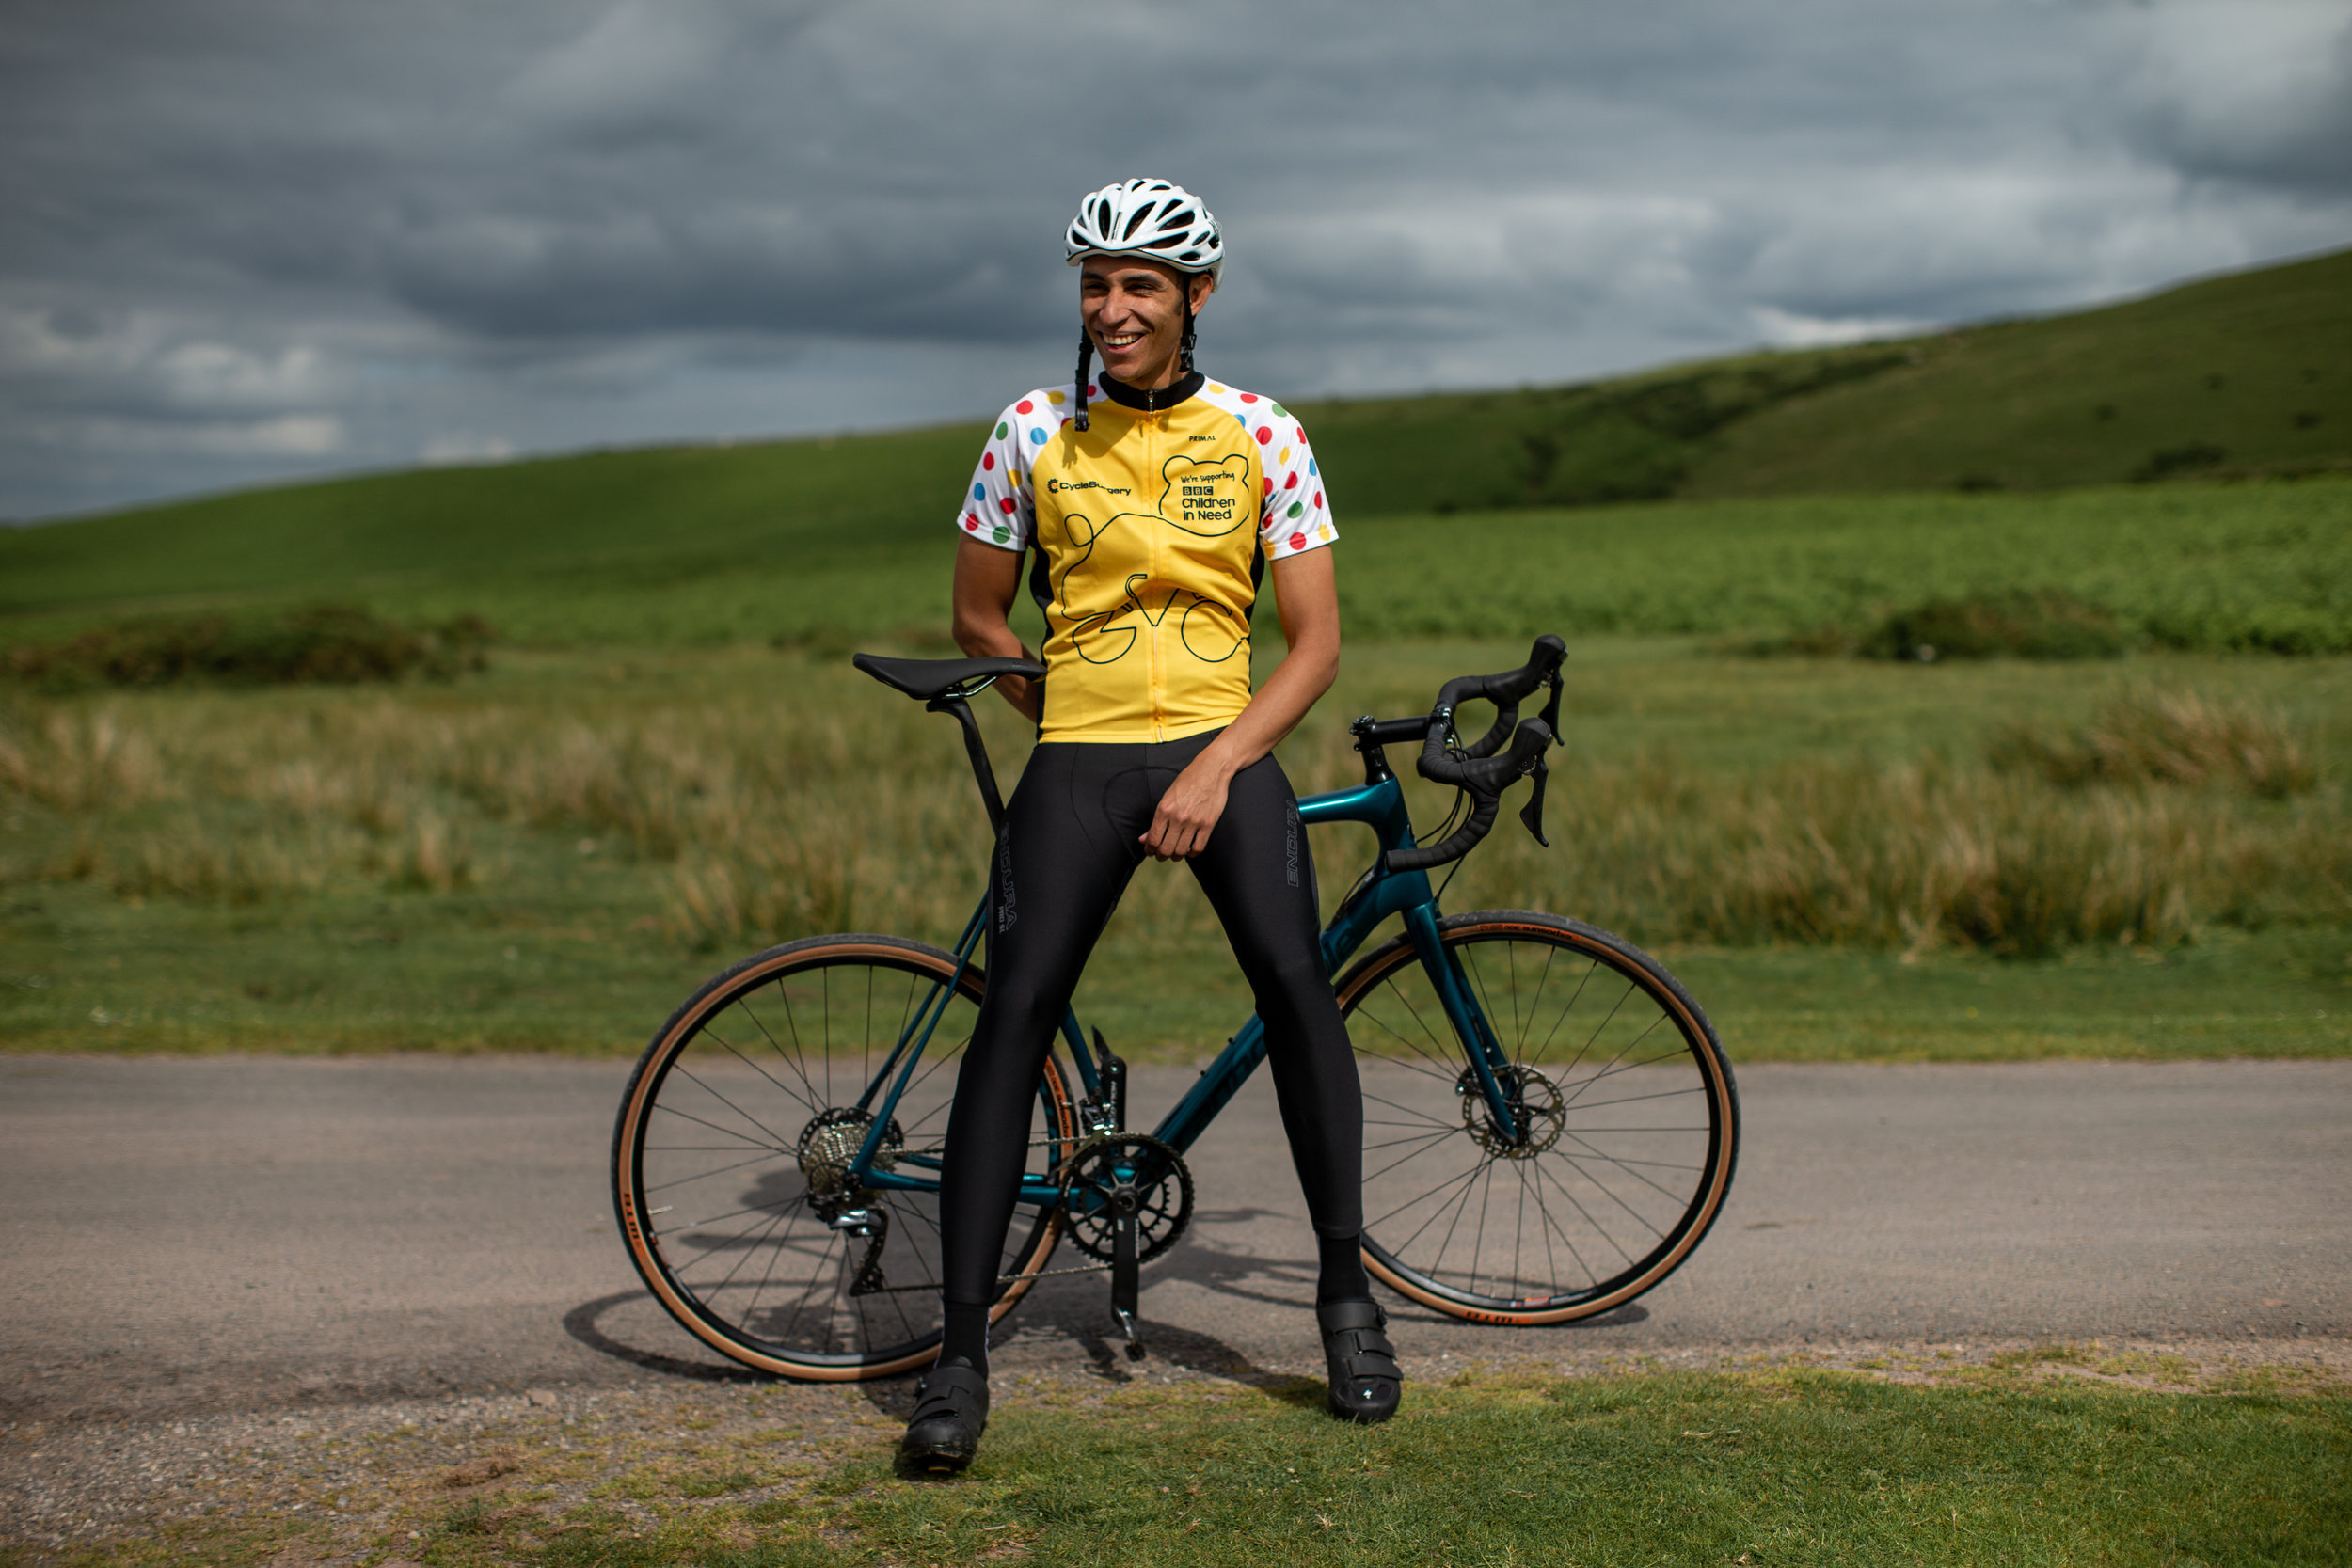 The Cycle Surgery x BBC Children in Need cycle jersey is a real head turner